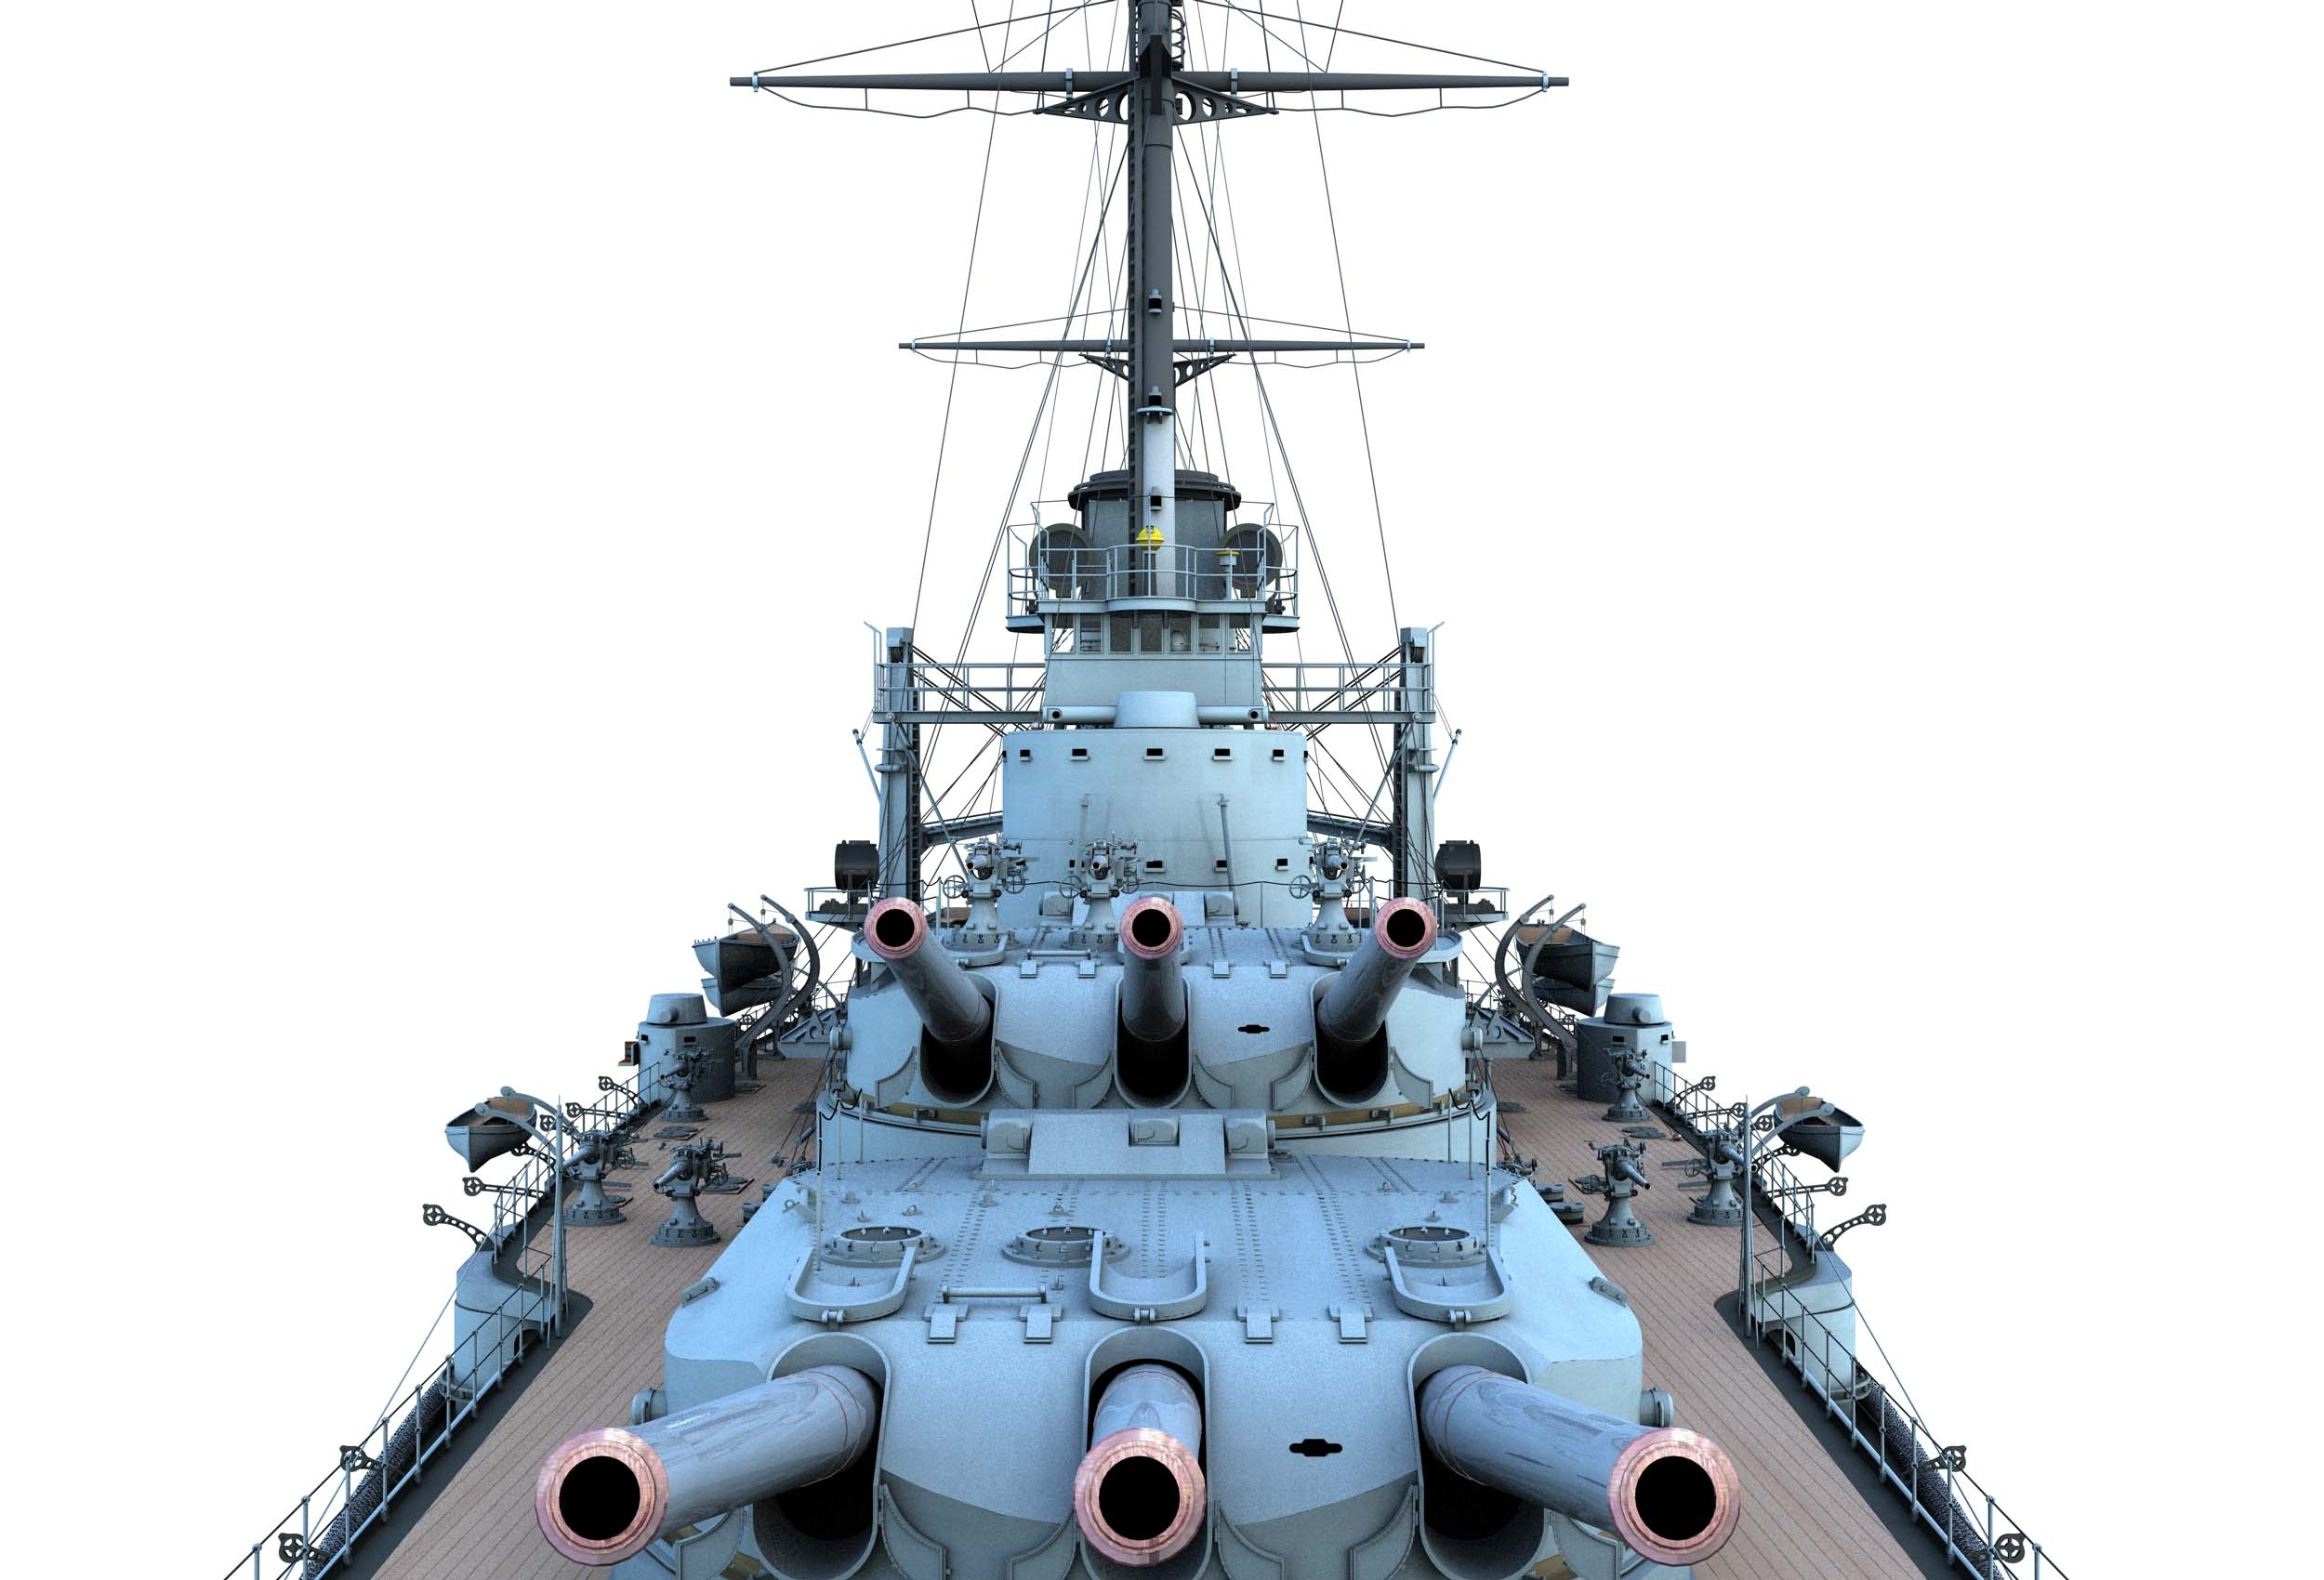 https://0901.nccdn.net/4_2/000/000/017/e75/CK38-Partial-Ship-Bow-Straight-on-Turrets-I-and-II-2500x1700.jpg